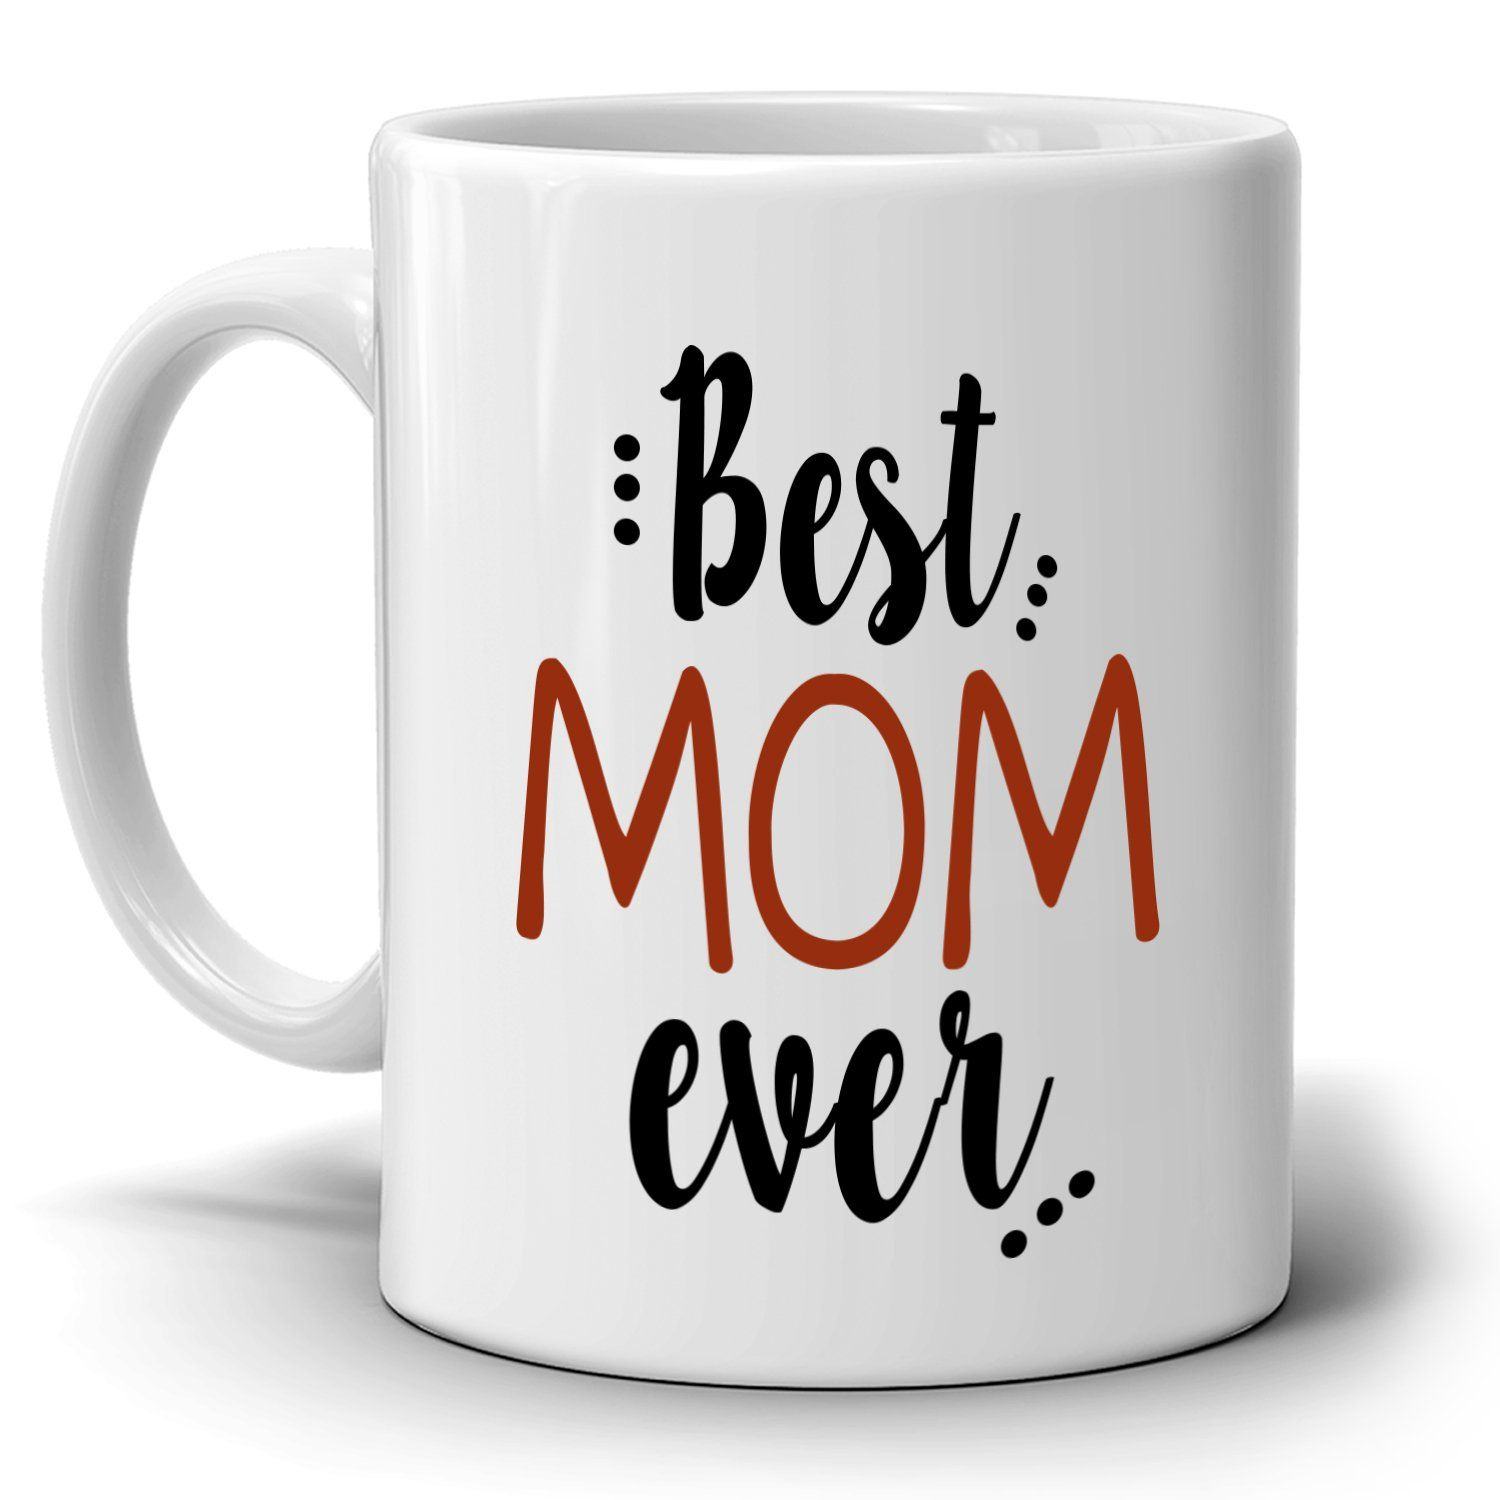 Best Mom Ever Coffee Mug Perfect Presents For Mothers Day And Mama Birthday Printed On